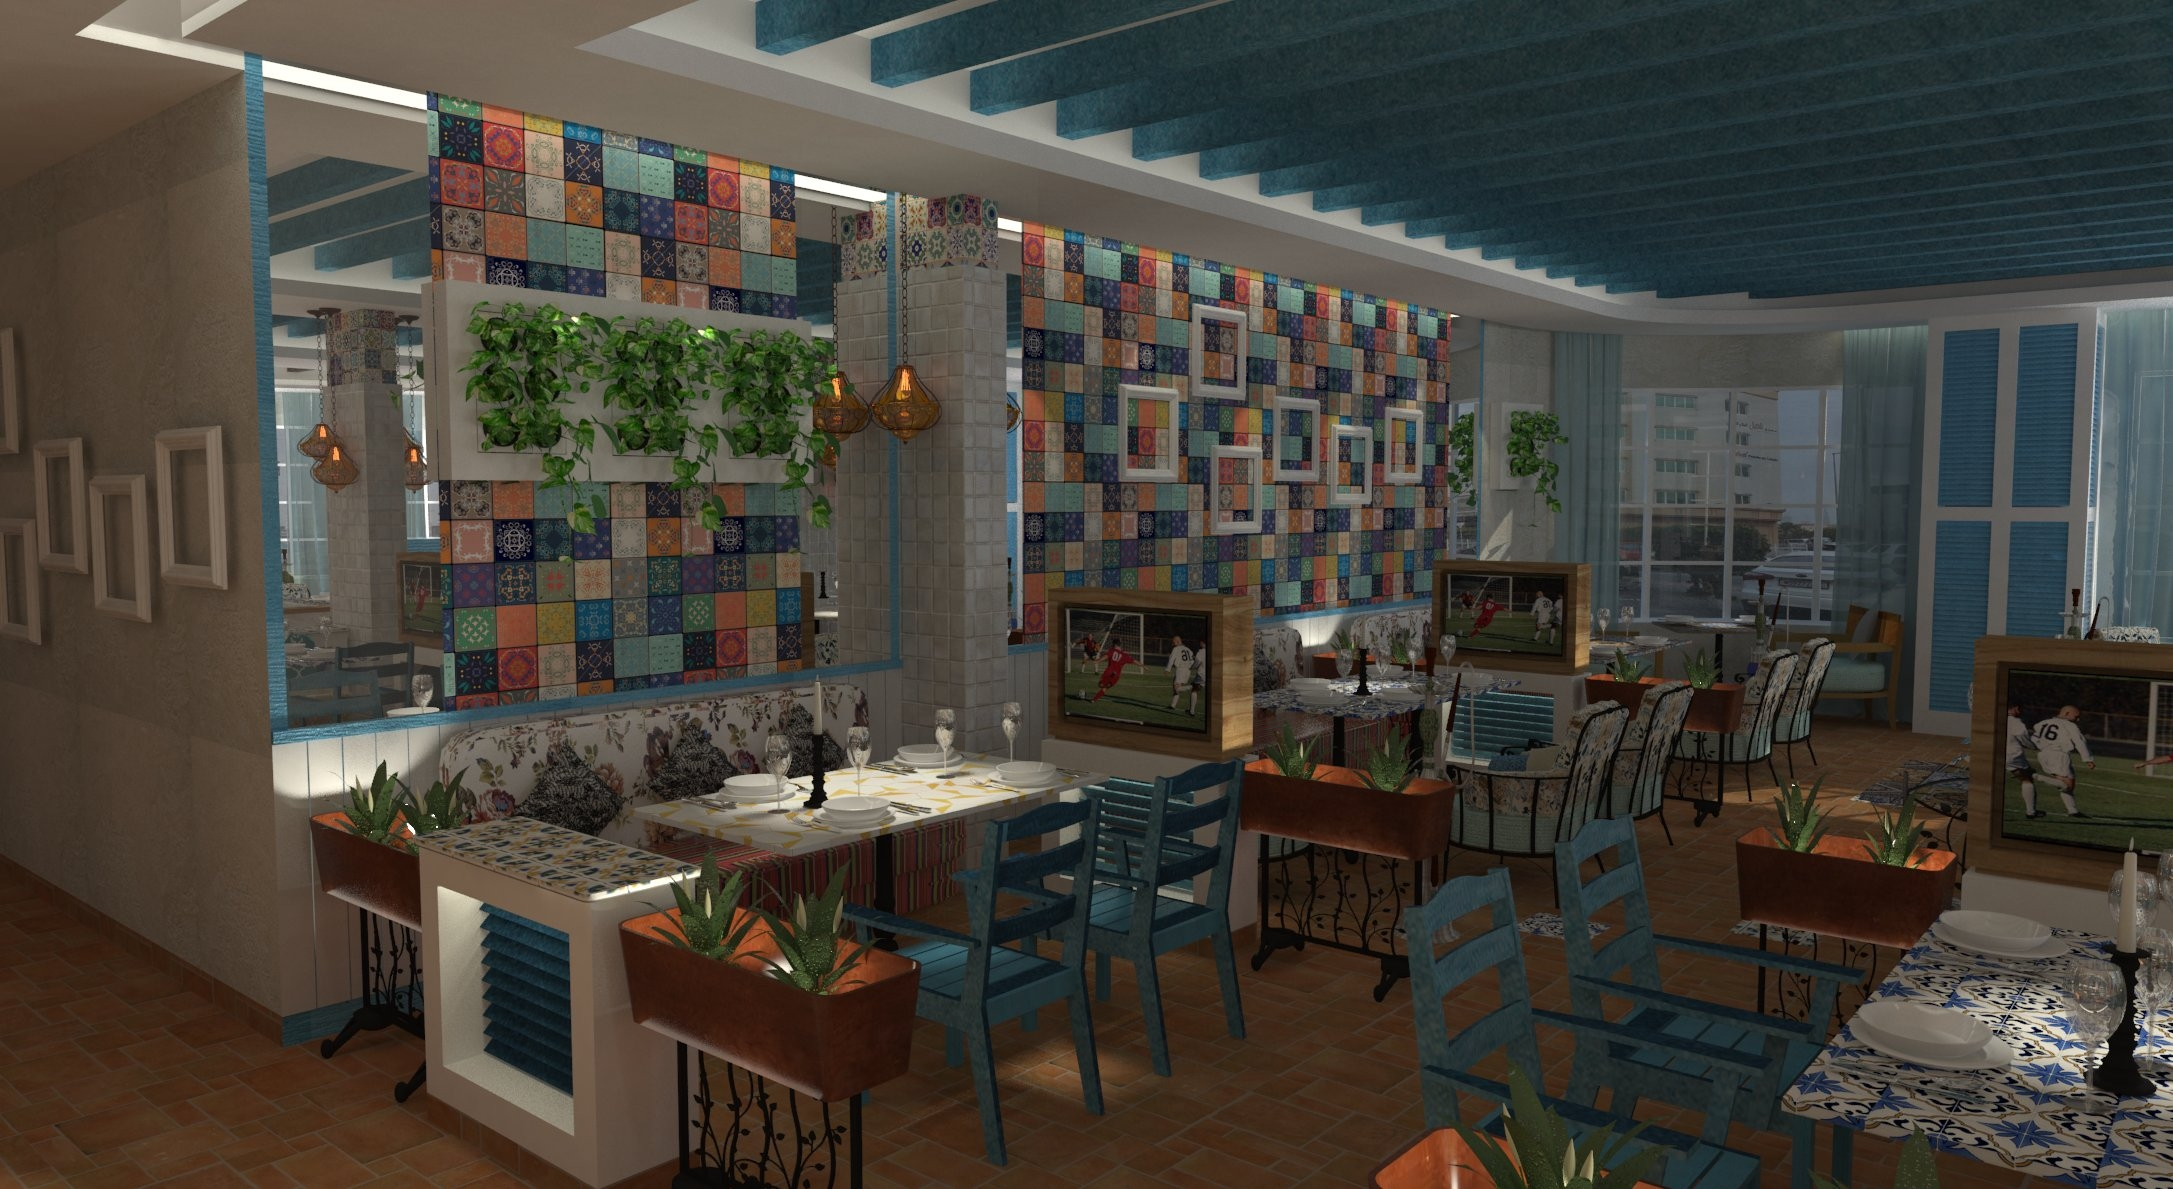 Design of New Restaurant in Zinj